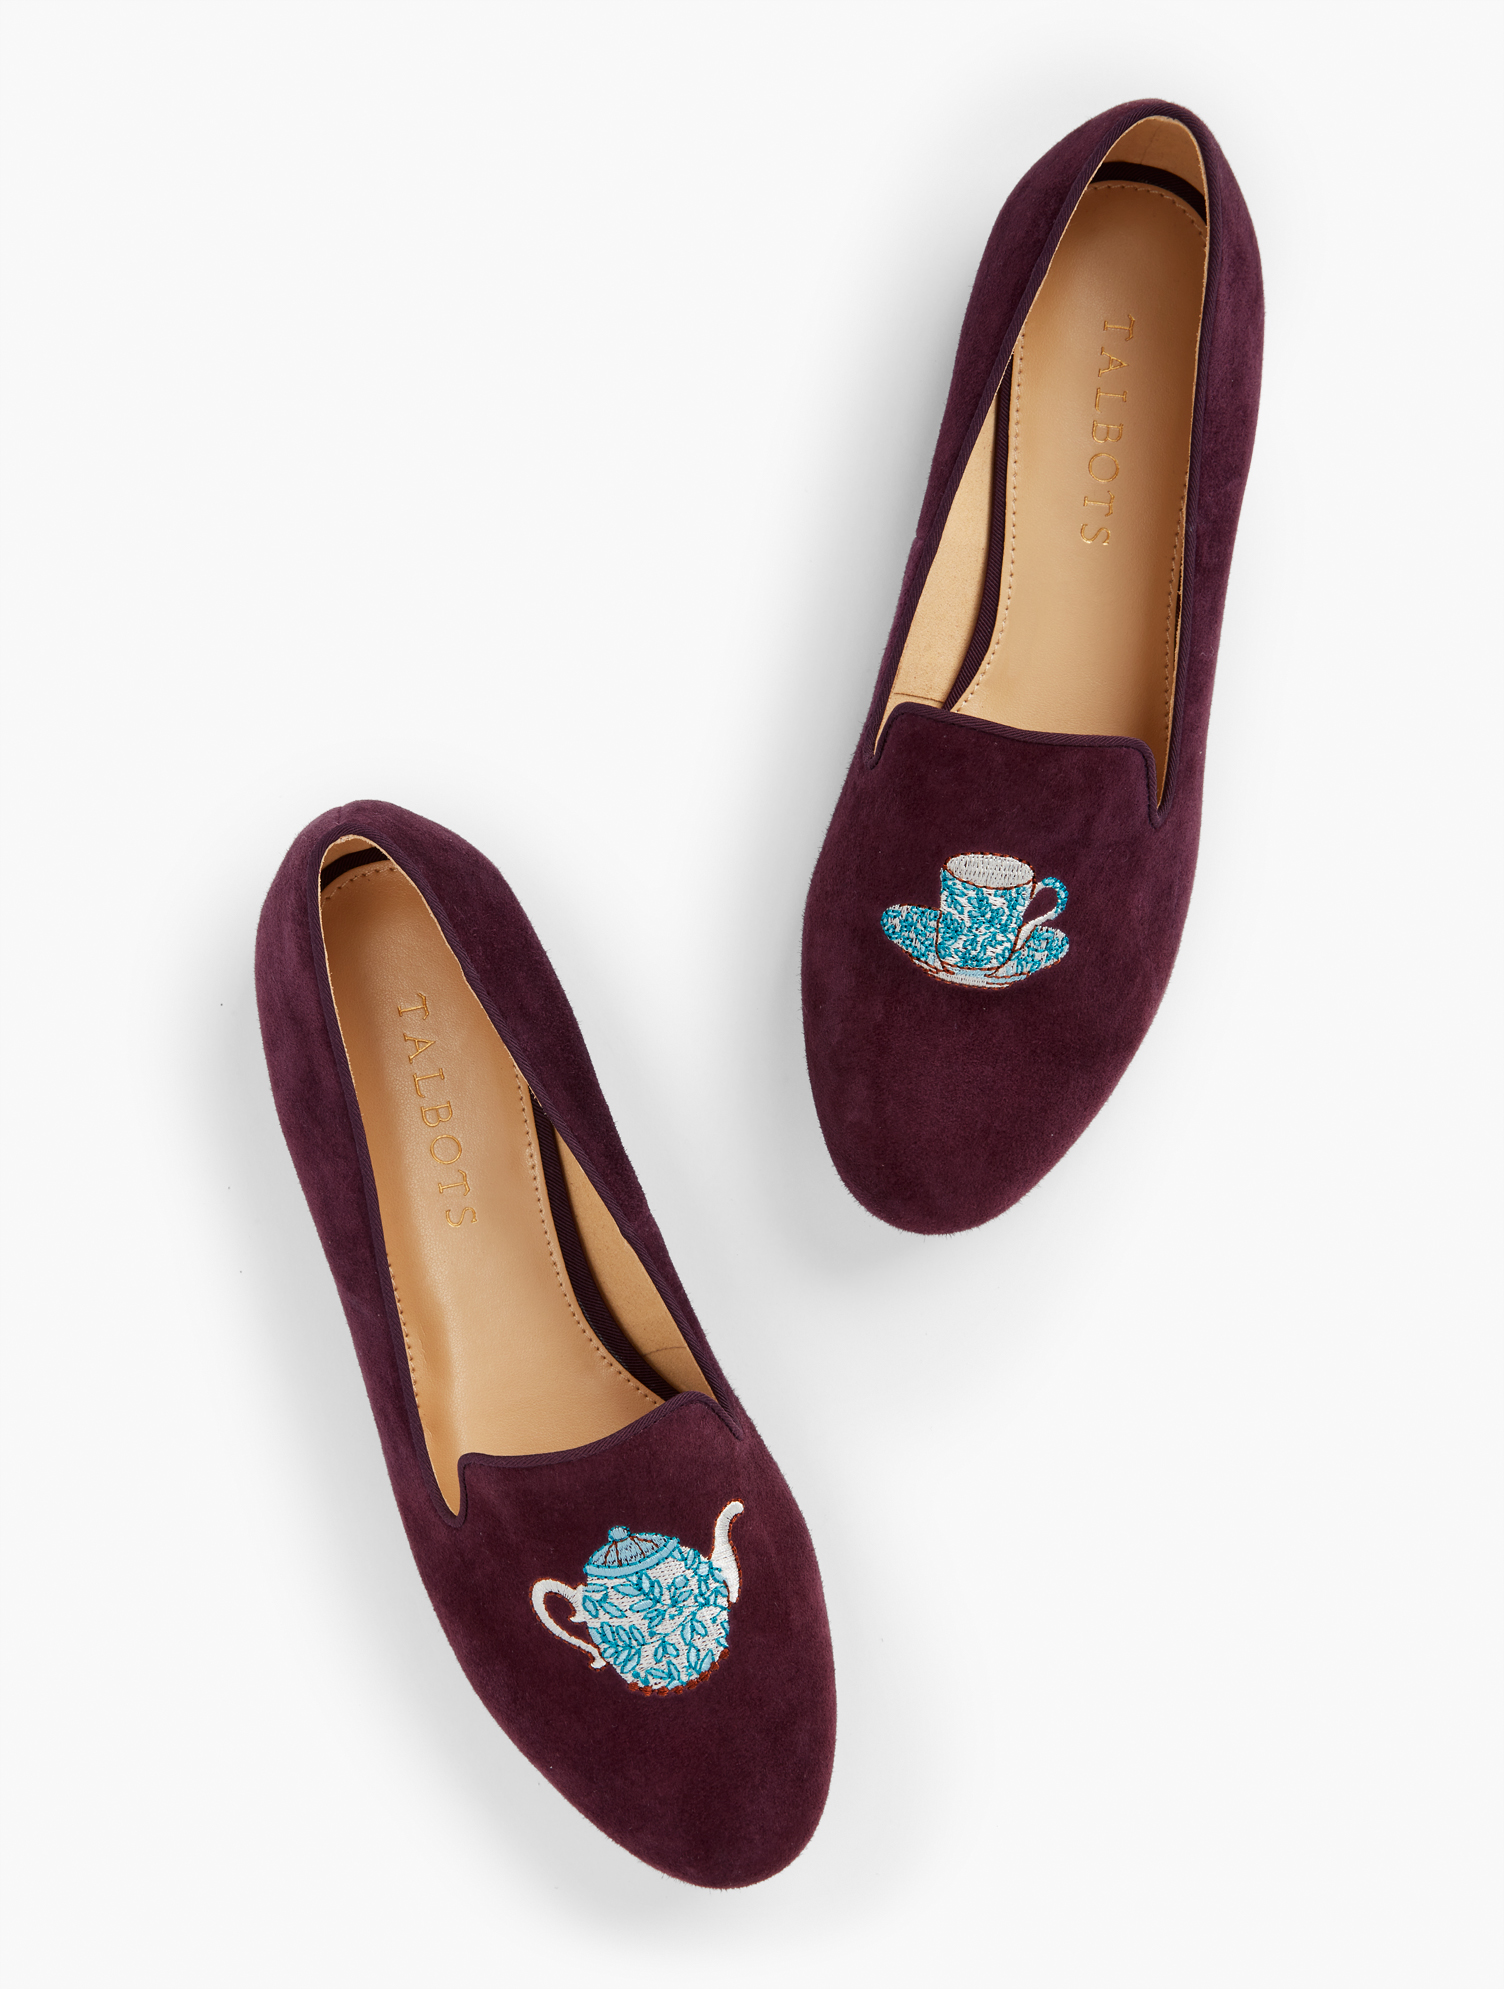 Retro Vintage Flats and Low Heel Shoes Ryan Buckle Loafers - Embroidered - Rich Burgundy - 11M Talbots $129.00 AT vintagedancer.com